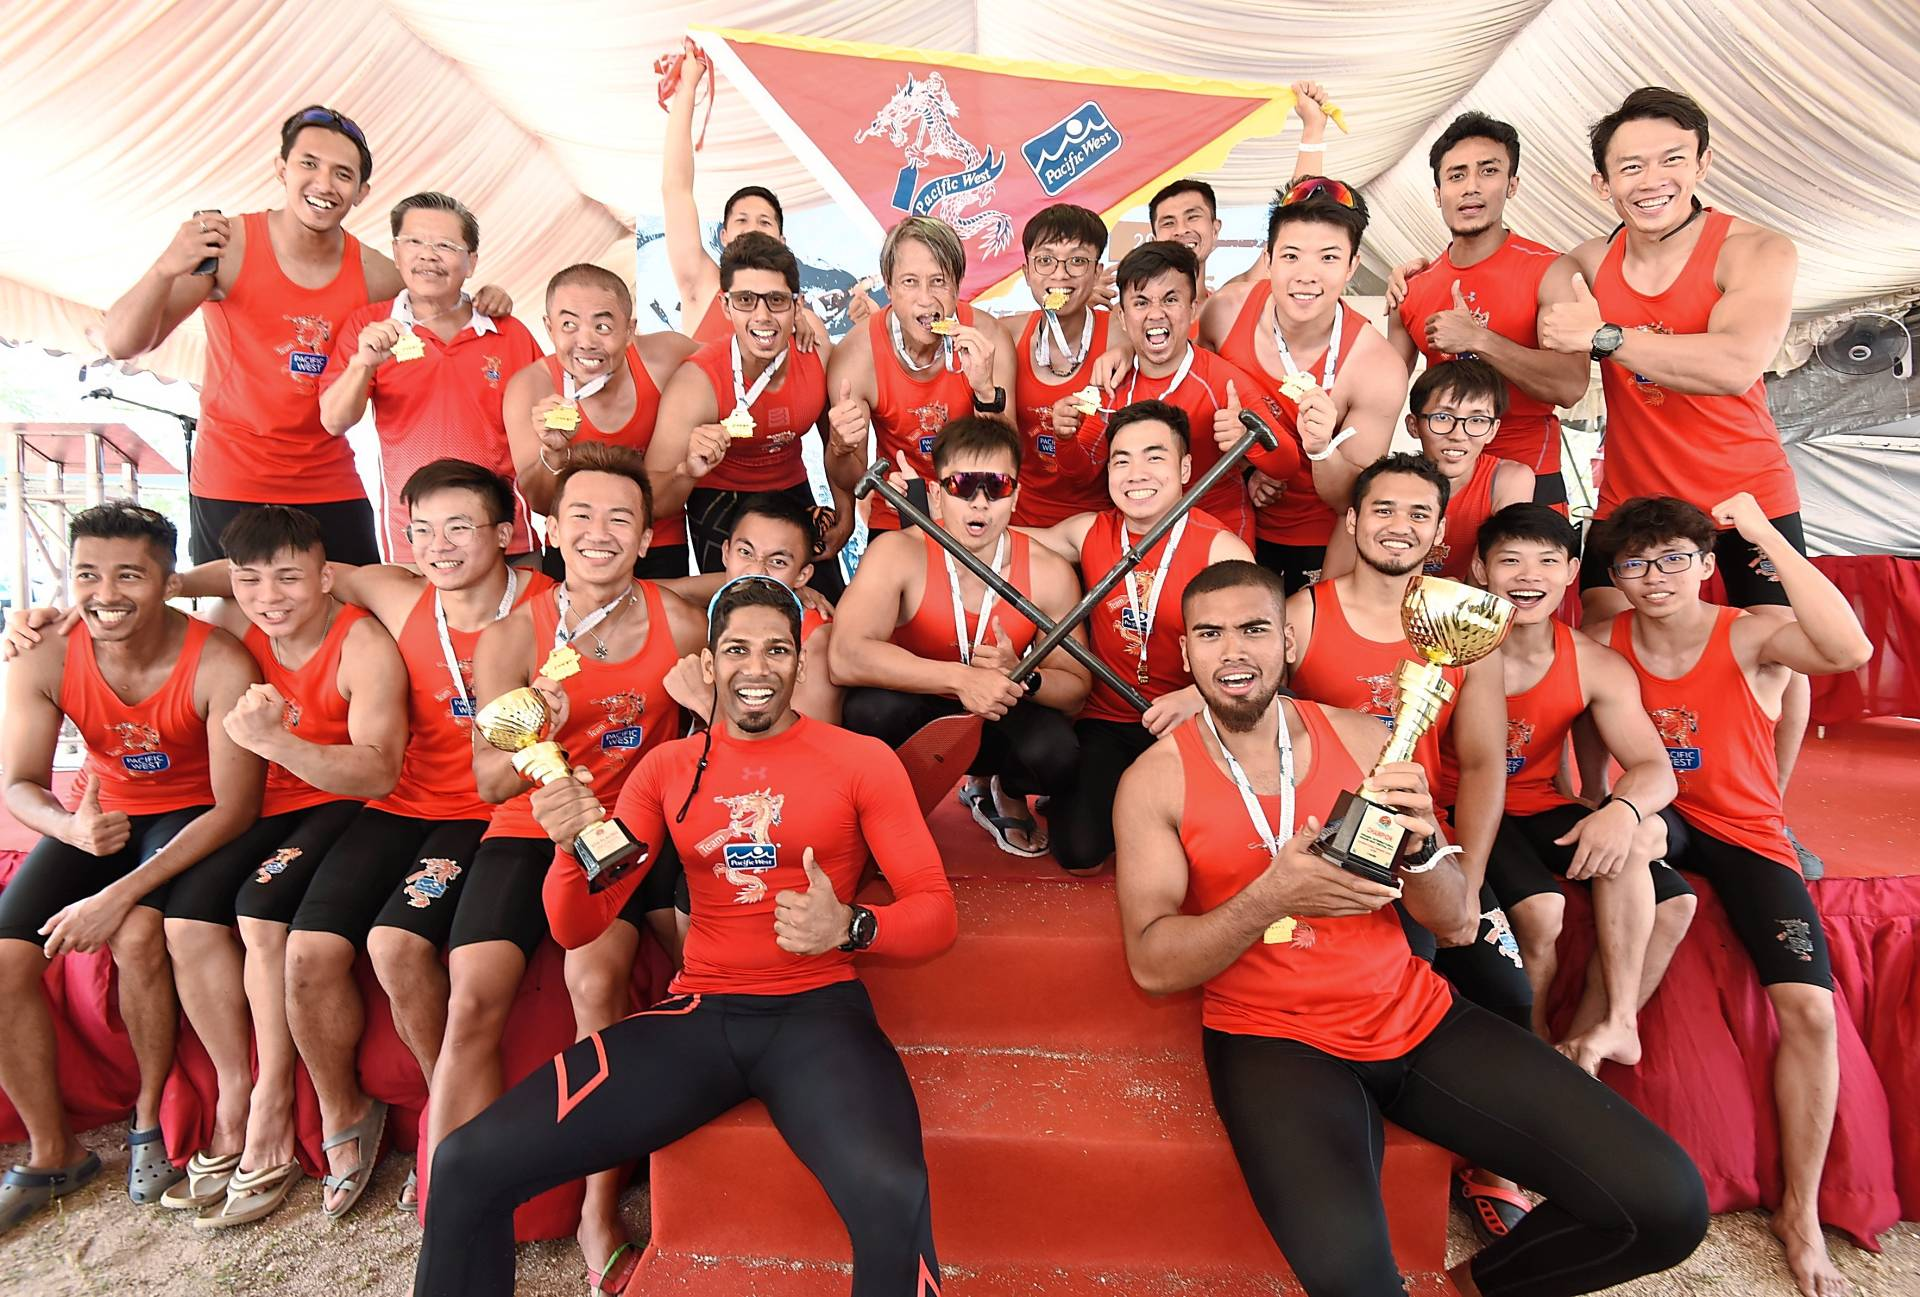 Pacific West Dragon Boat Club members in jubilant mood after their successful outing.